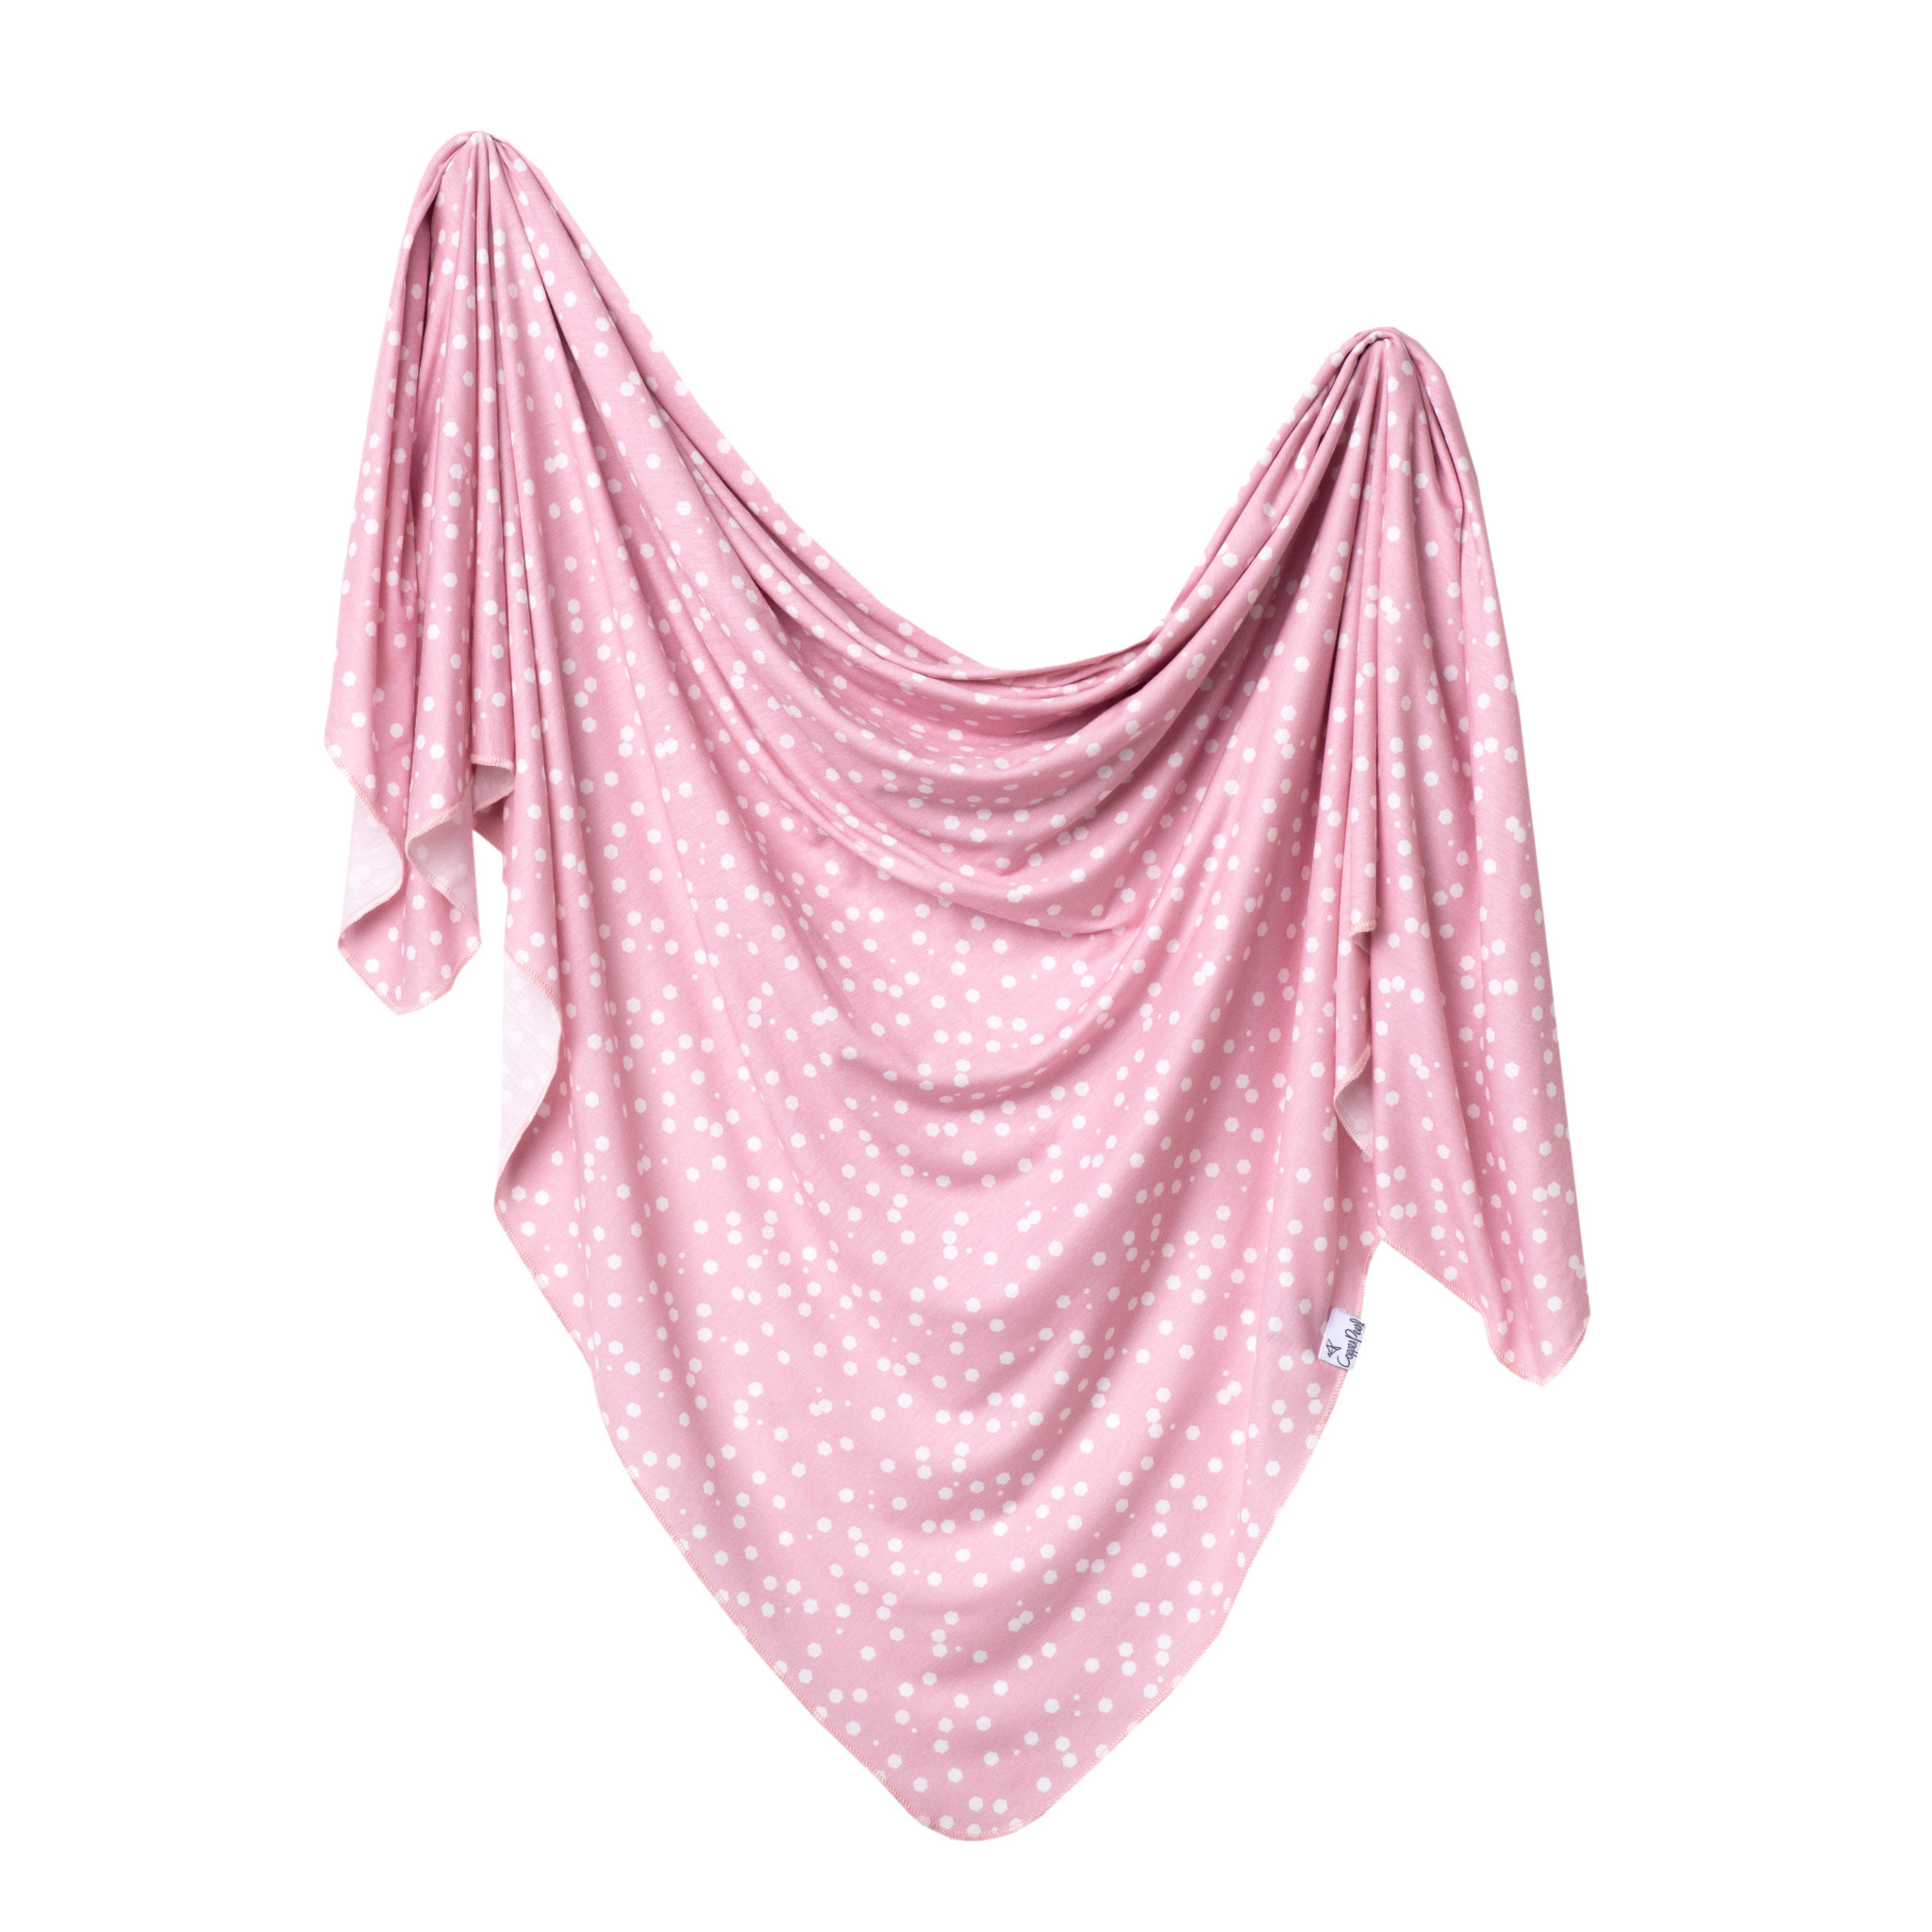 Copper Pearl Knit Swaddle Blanket Lucy